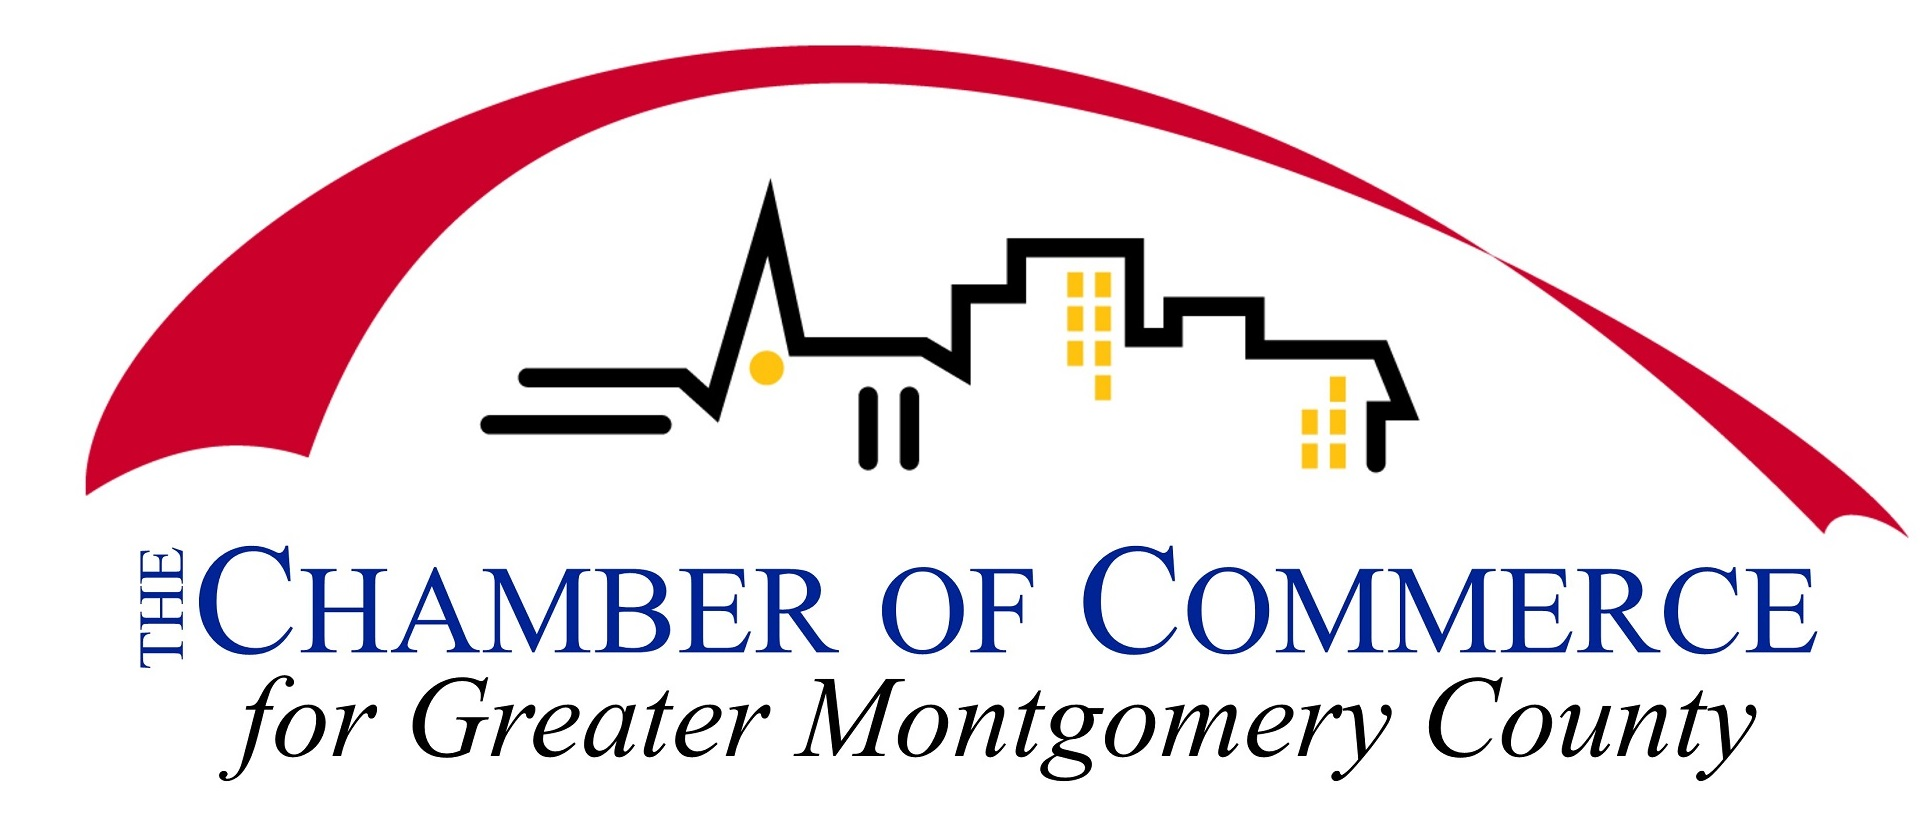 The Chamber of Commerce for Greater Montgomery County serving the Indian Valley, North Penn, Wissahickon regions and surrounding communities.